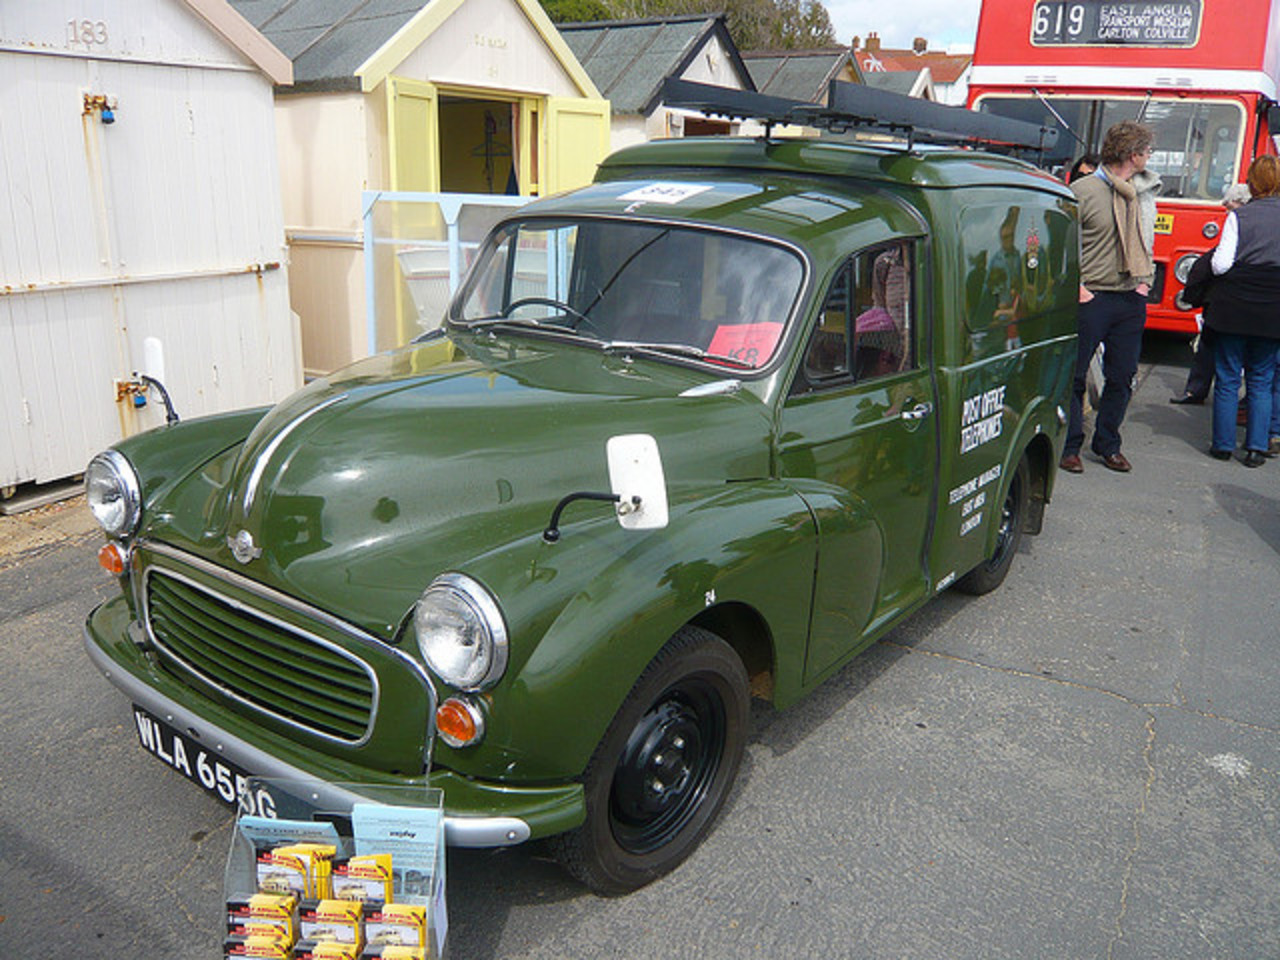 Morris 1000 Post Office Van Photo Gallery: Photo #02 out of 9 ...